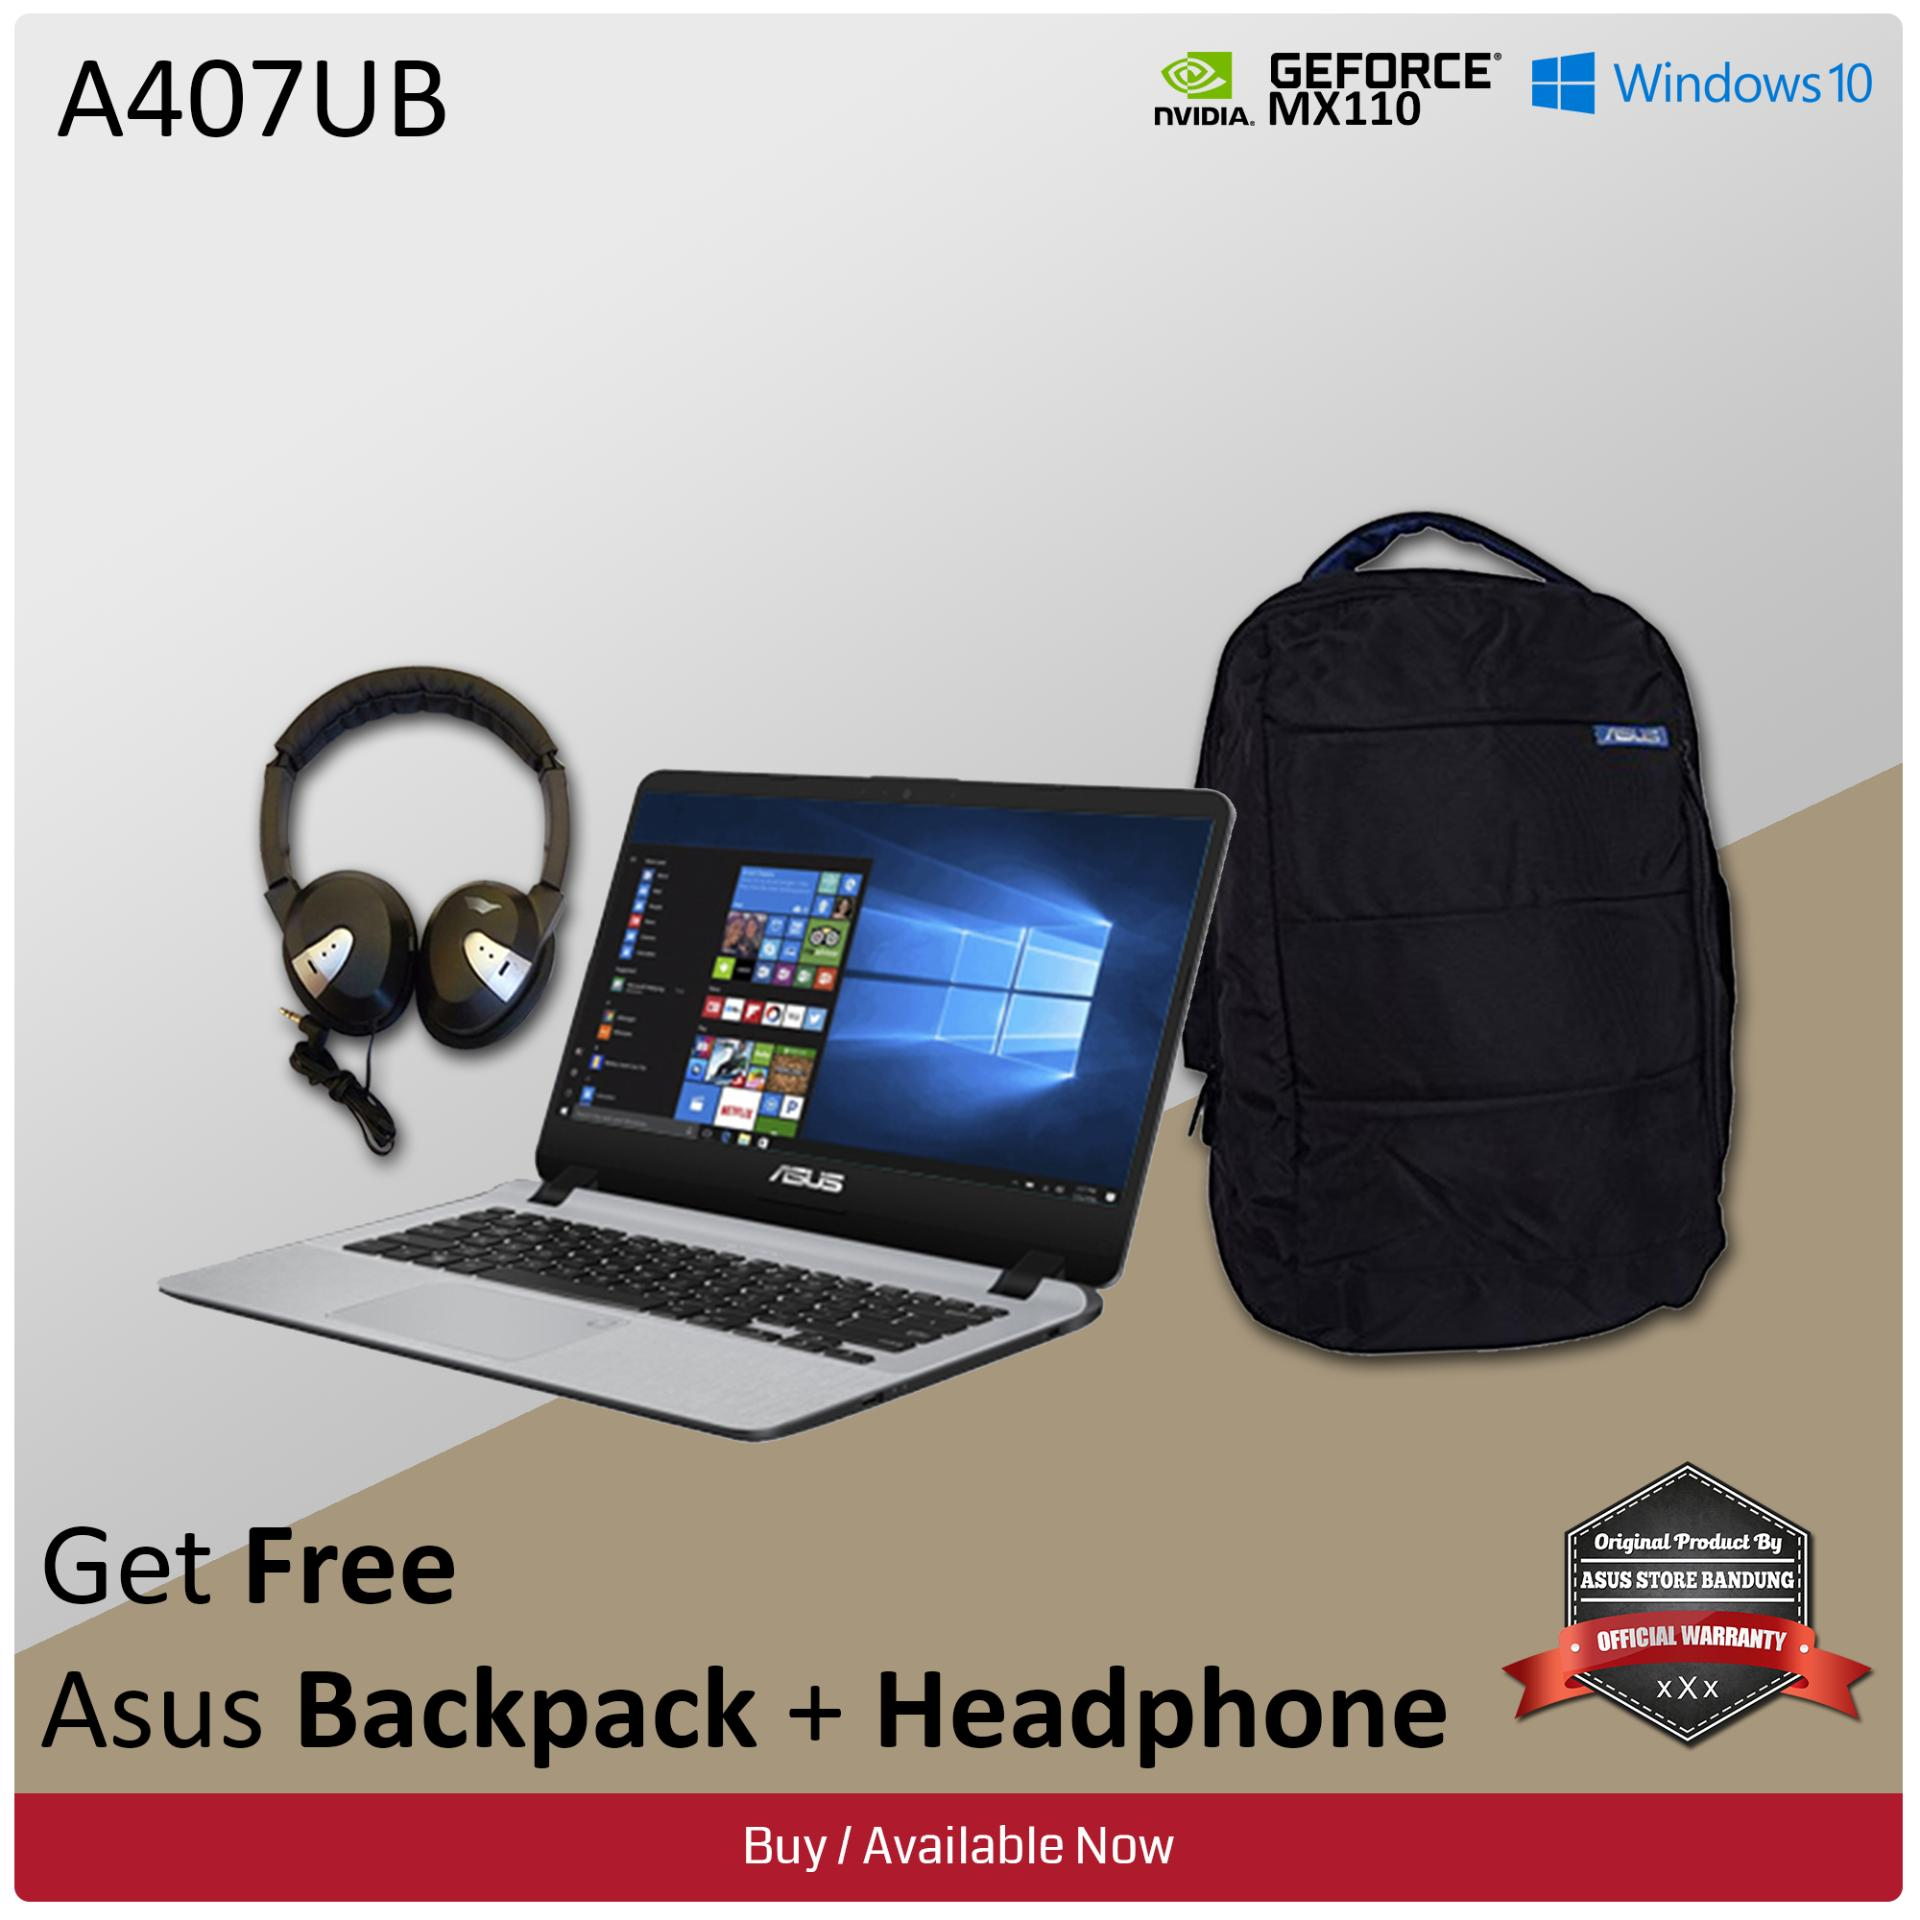 Asus Notebook A407UB-BV070T Intel Core i3-6006U + Nvidia Geforce MX110 2GB GDDR5 4GB RAM 1TB HDD Windows 10 + Free